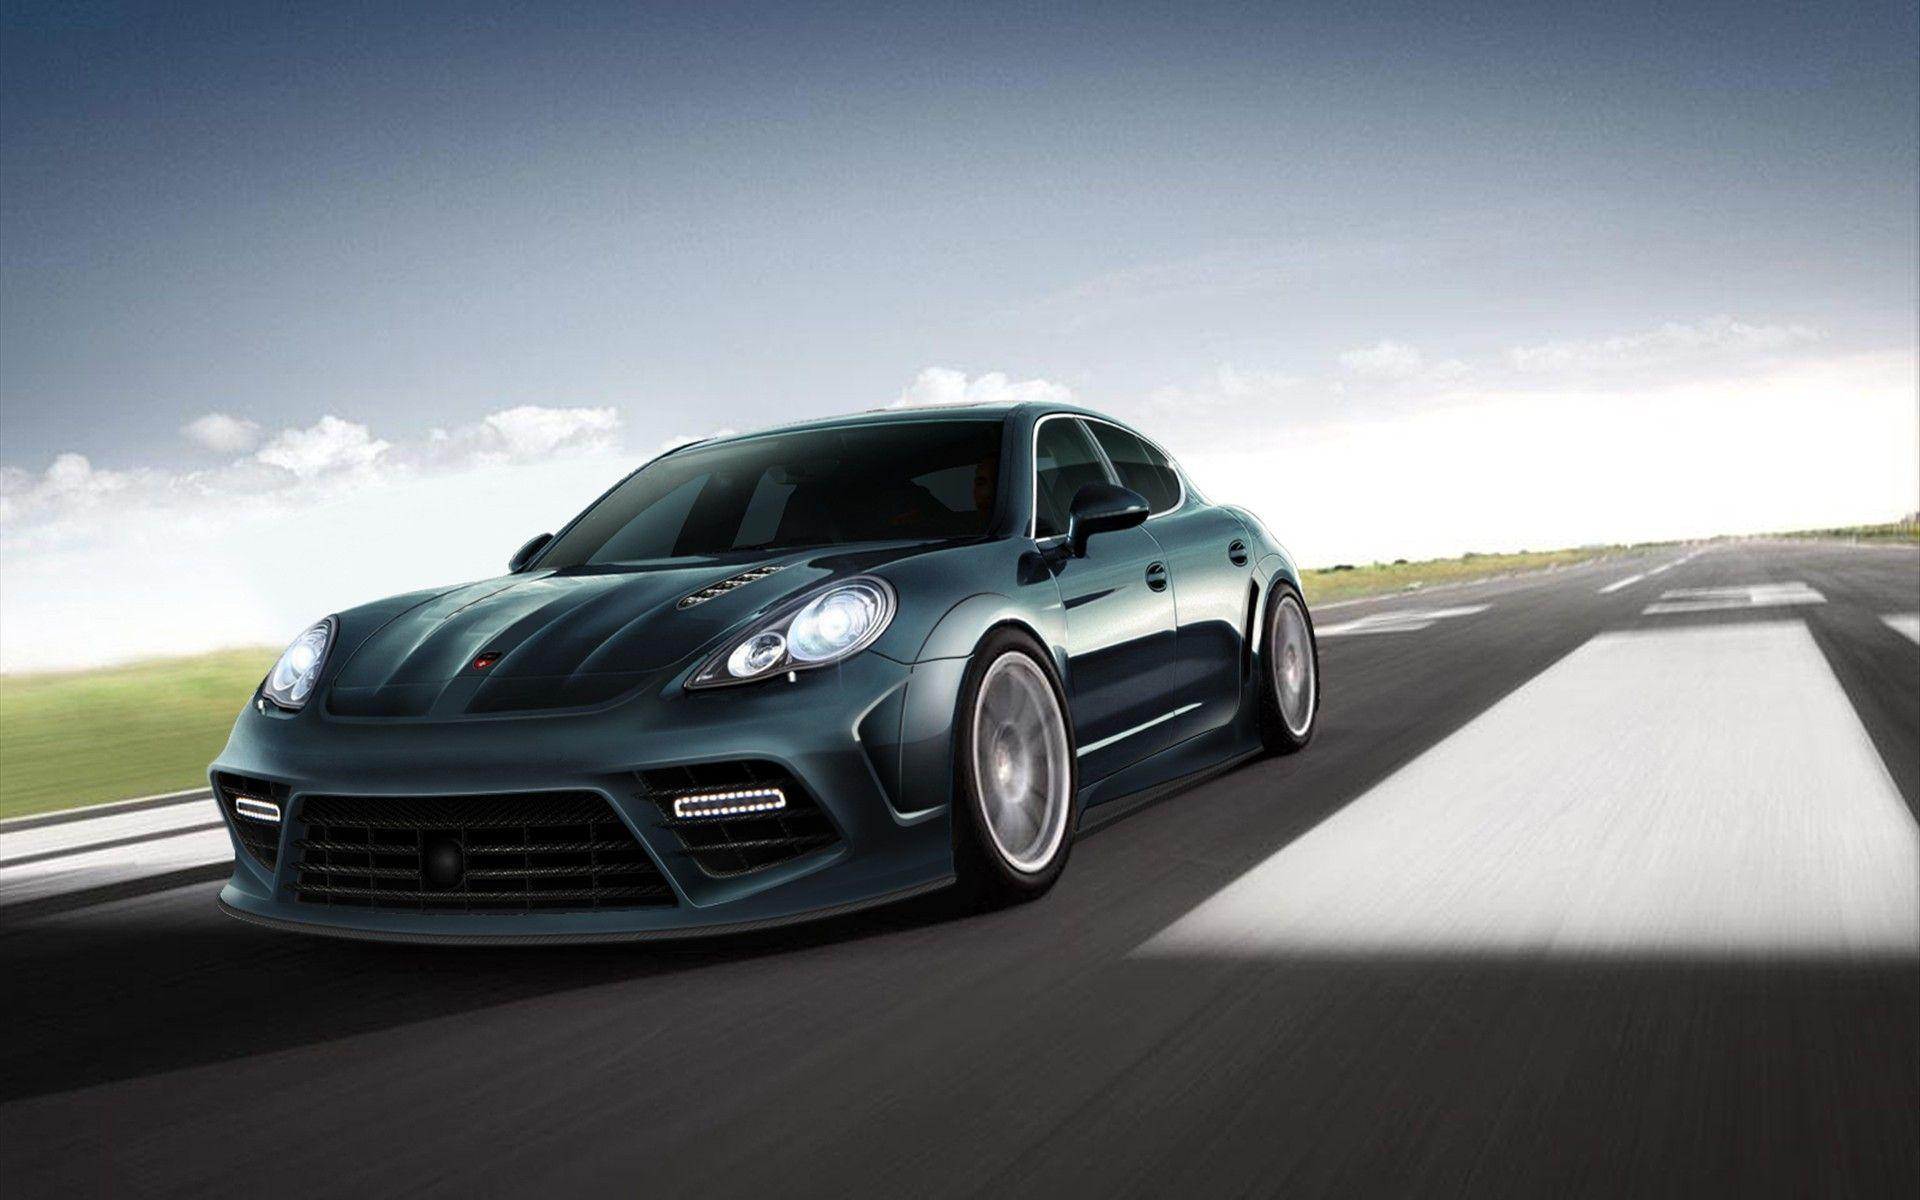 Porsche Panamera Wallpapers - Full HD wallpaper search